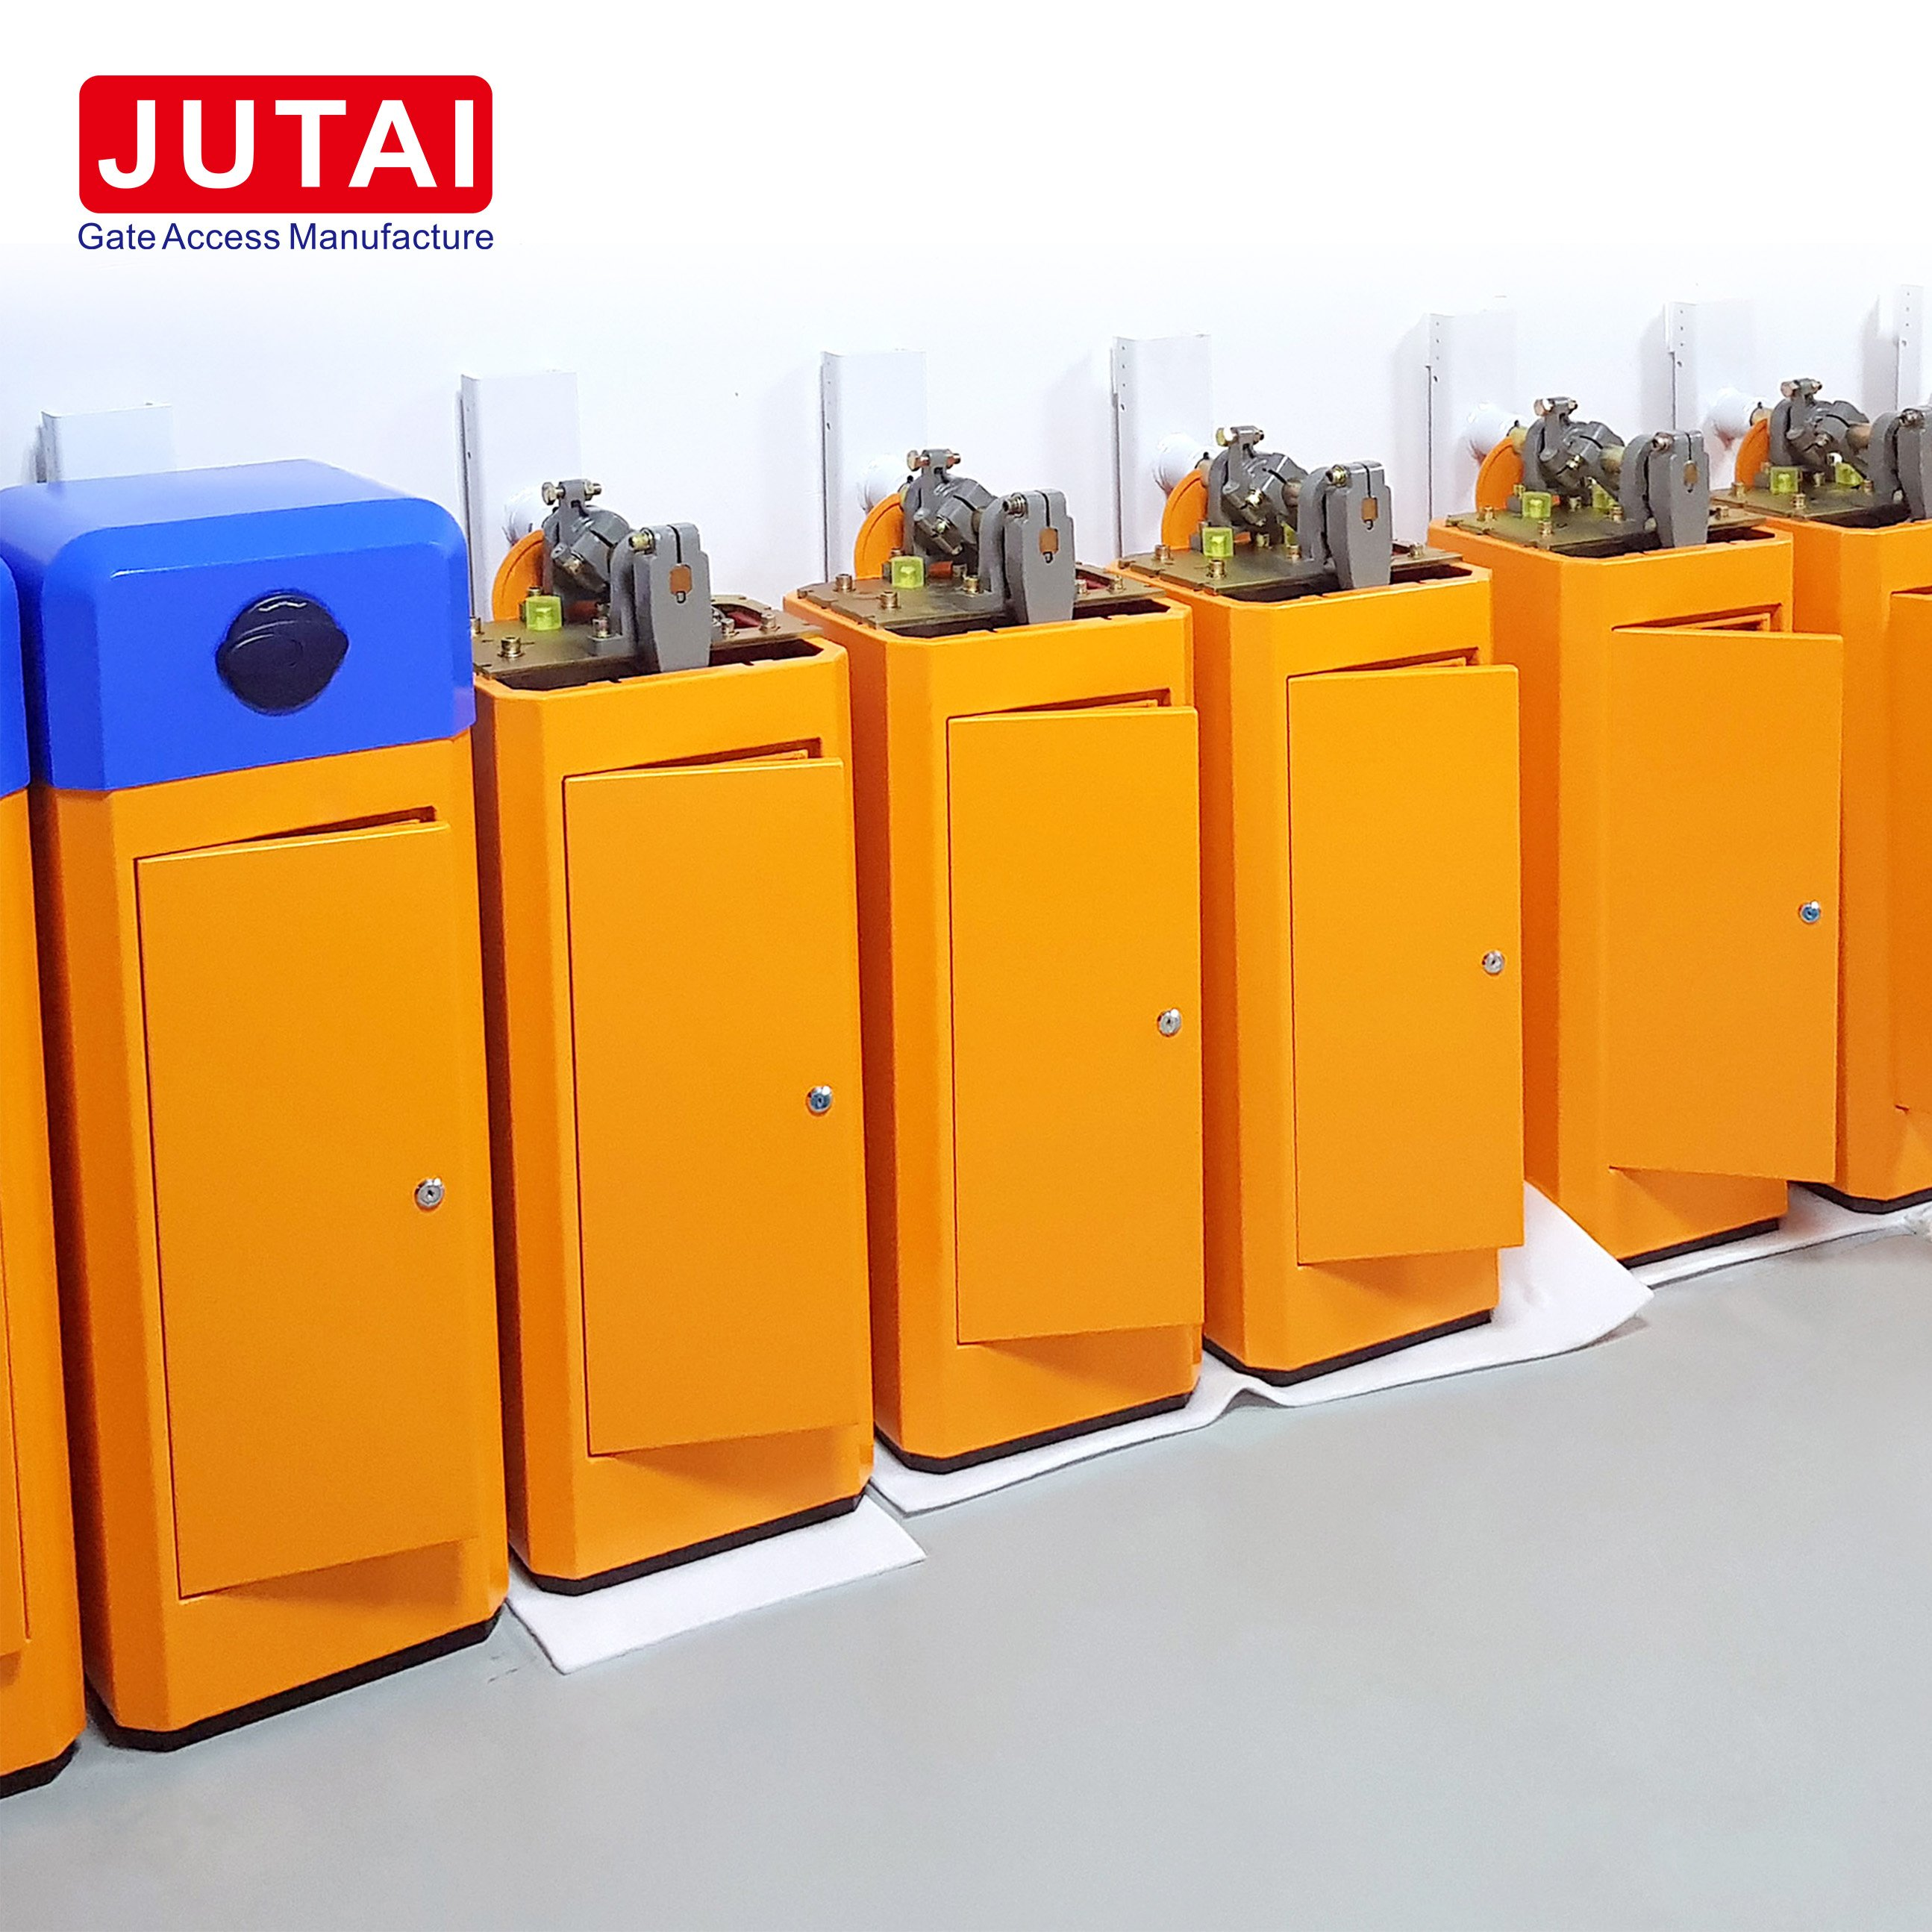 Gate Access Barrier Gate Operator JUTAI Support Parking Barrier Gate Solution